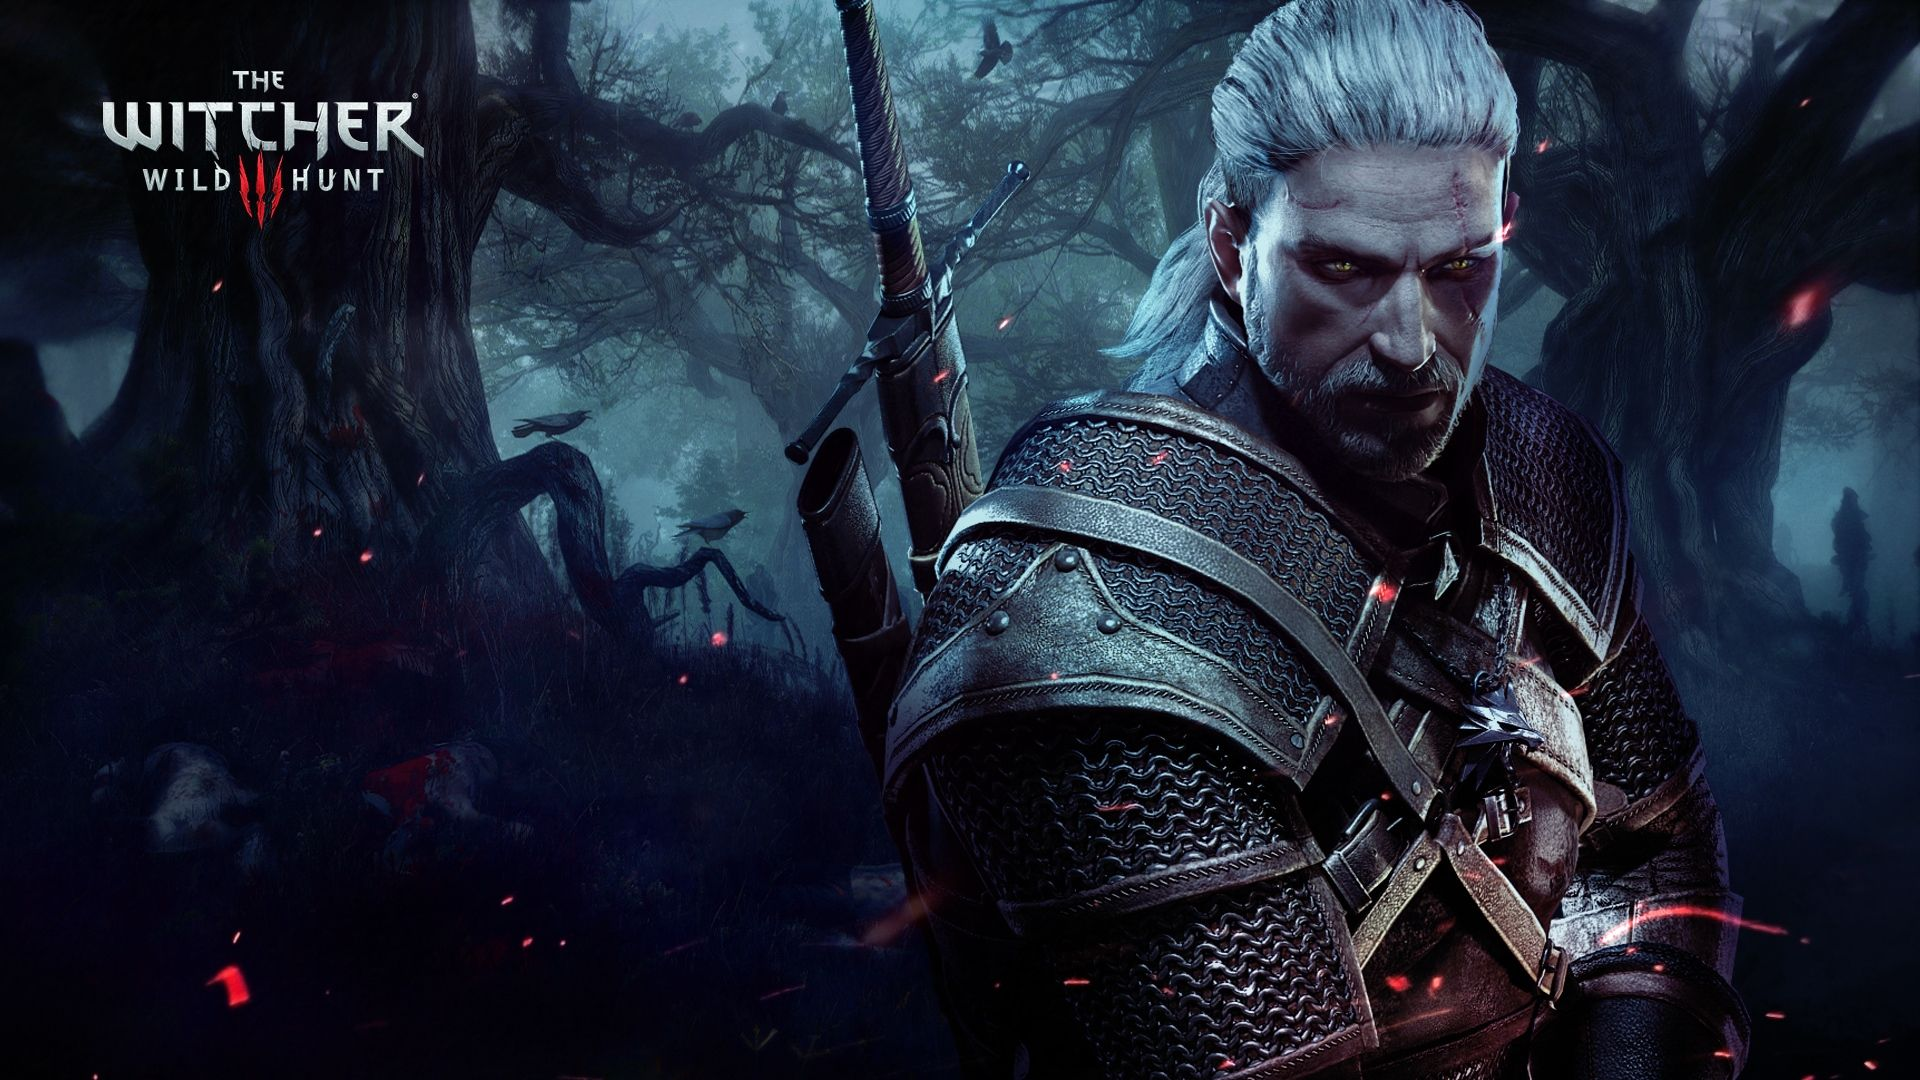 The Witcher, Wallpaper